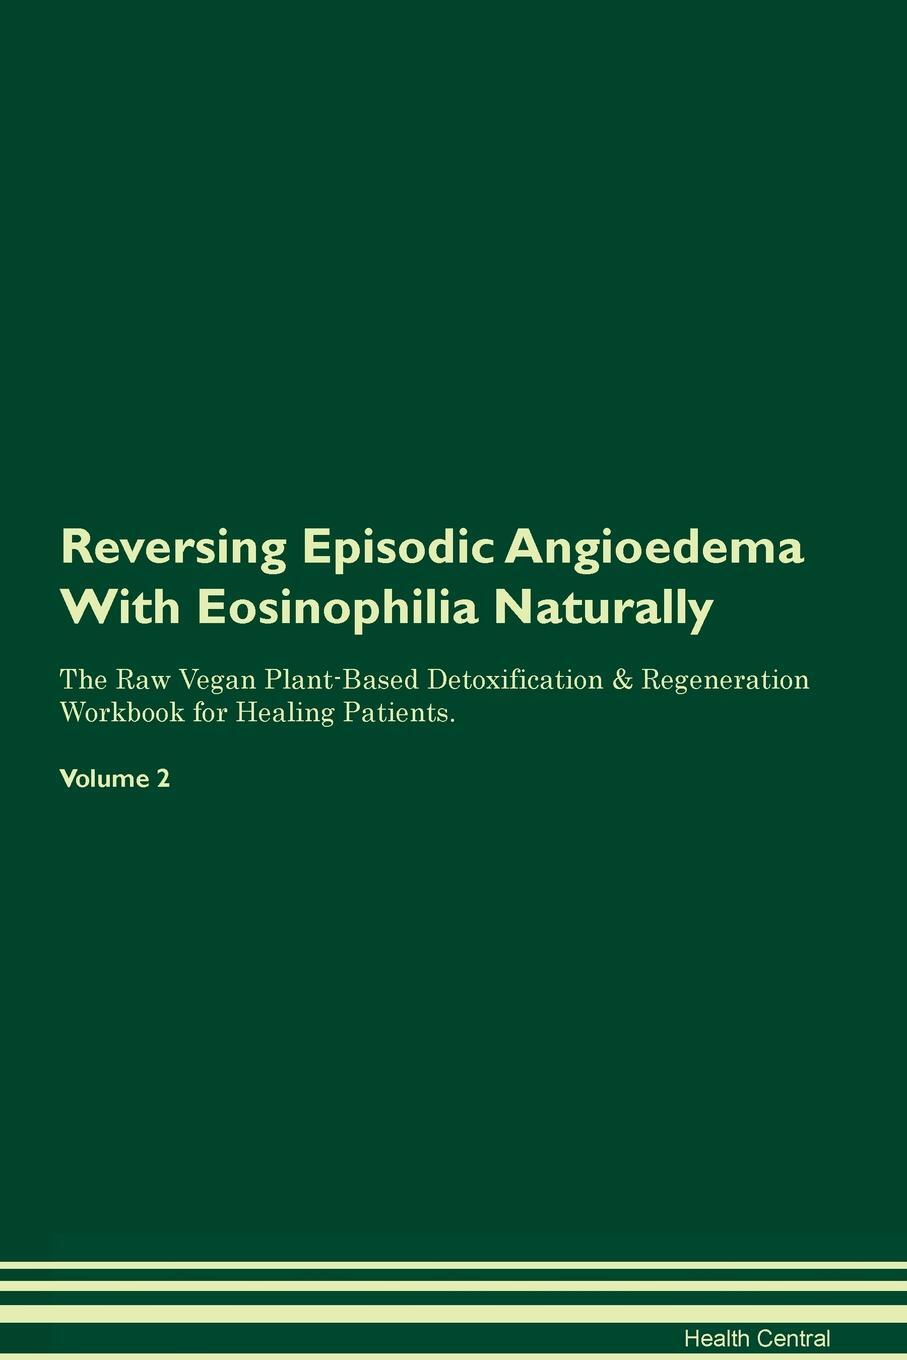 Reversing Episodic Angioedema With Eosinophilia Naturally The Raw Vegan Plant-Based Detoxification & Regeneration Workbook for Healing Patients. Volume 2